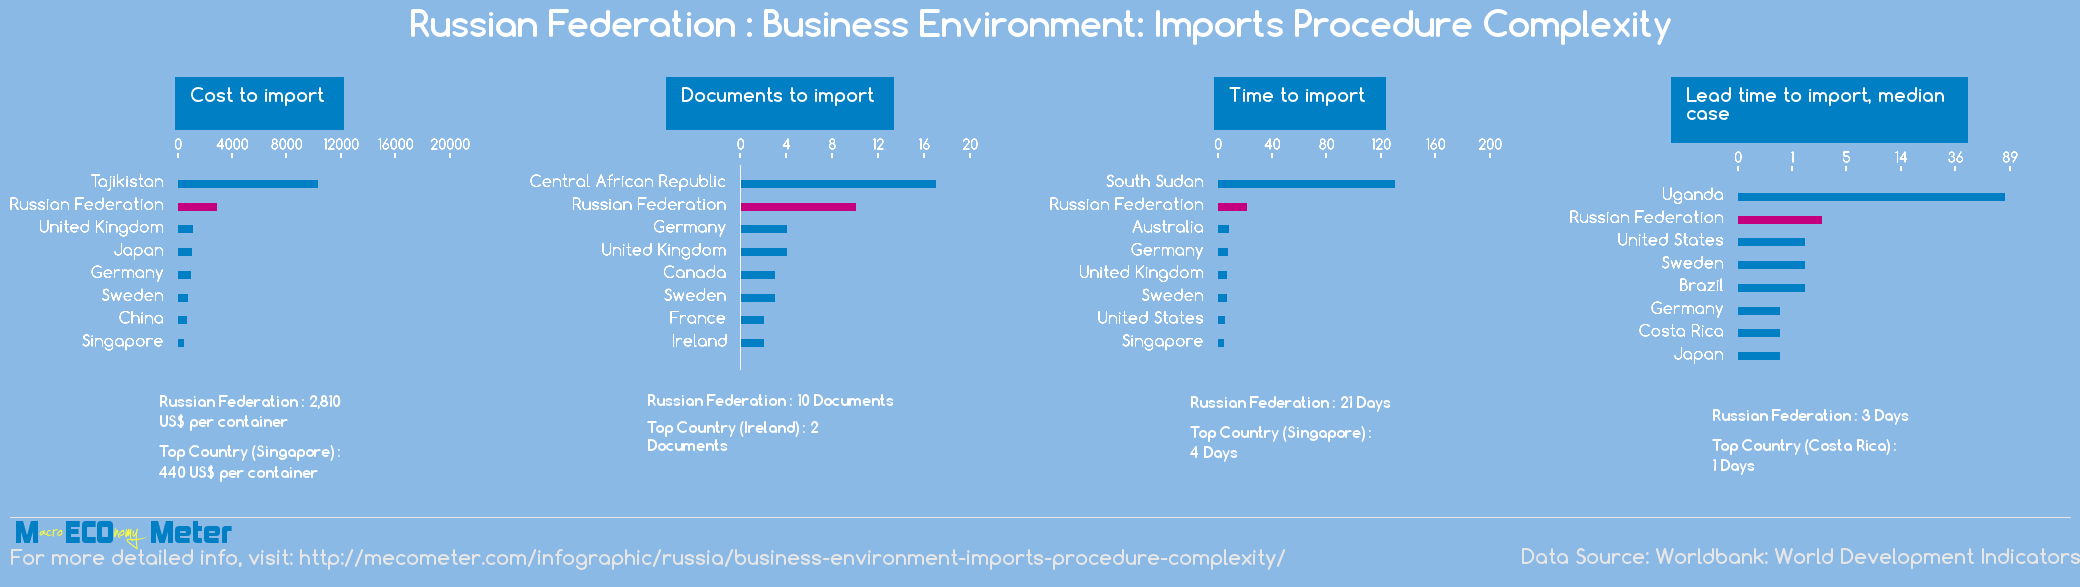 Russian Federation : Business Environment: Imports Procedure Complexity